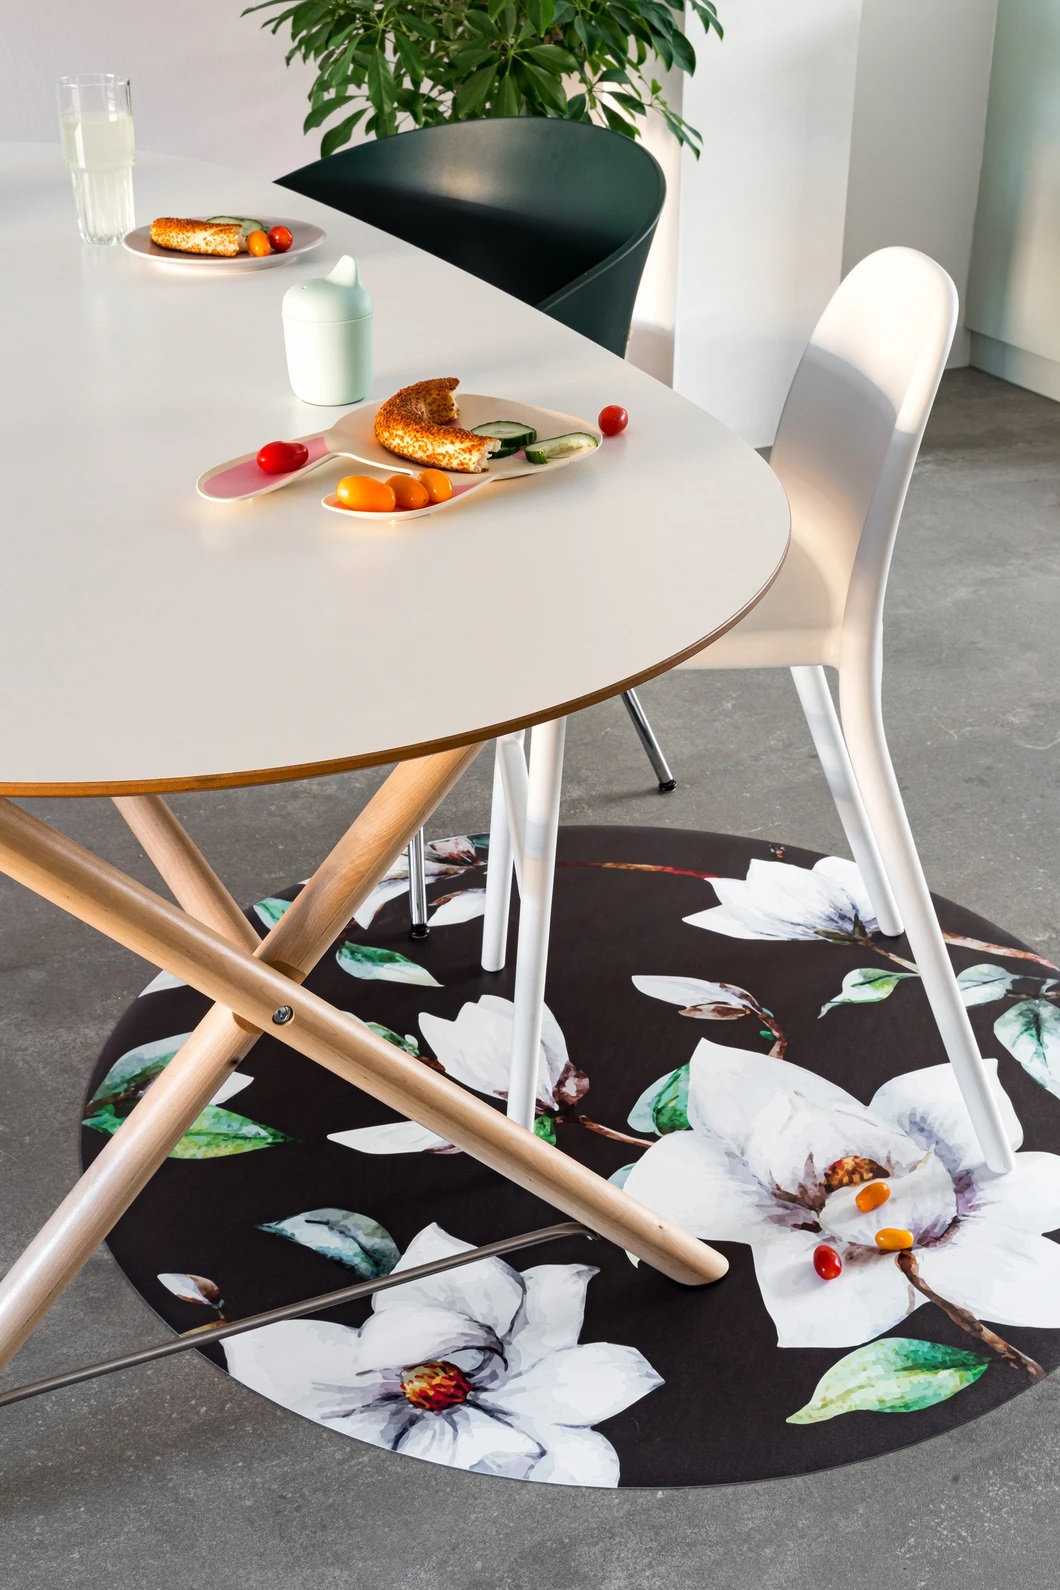 image - Clean Mats and Better Impression on the Guests